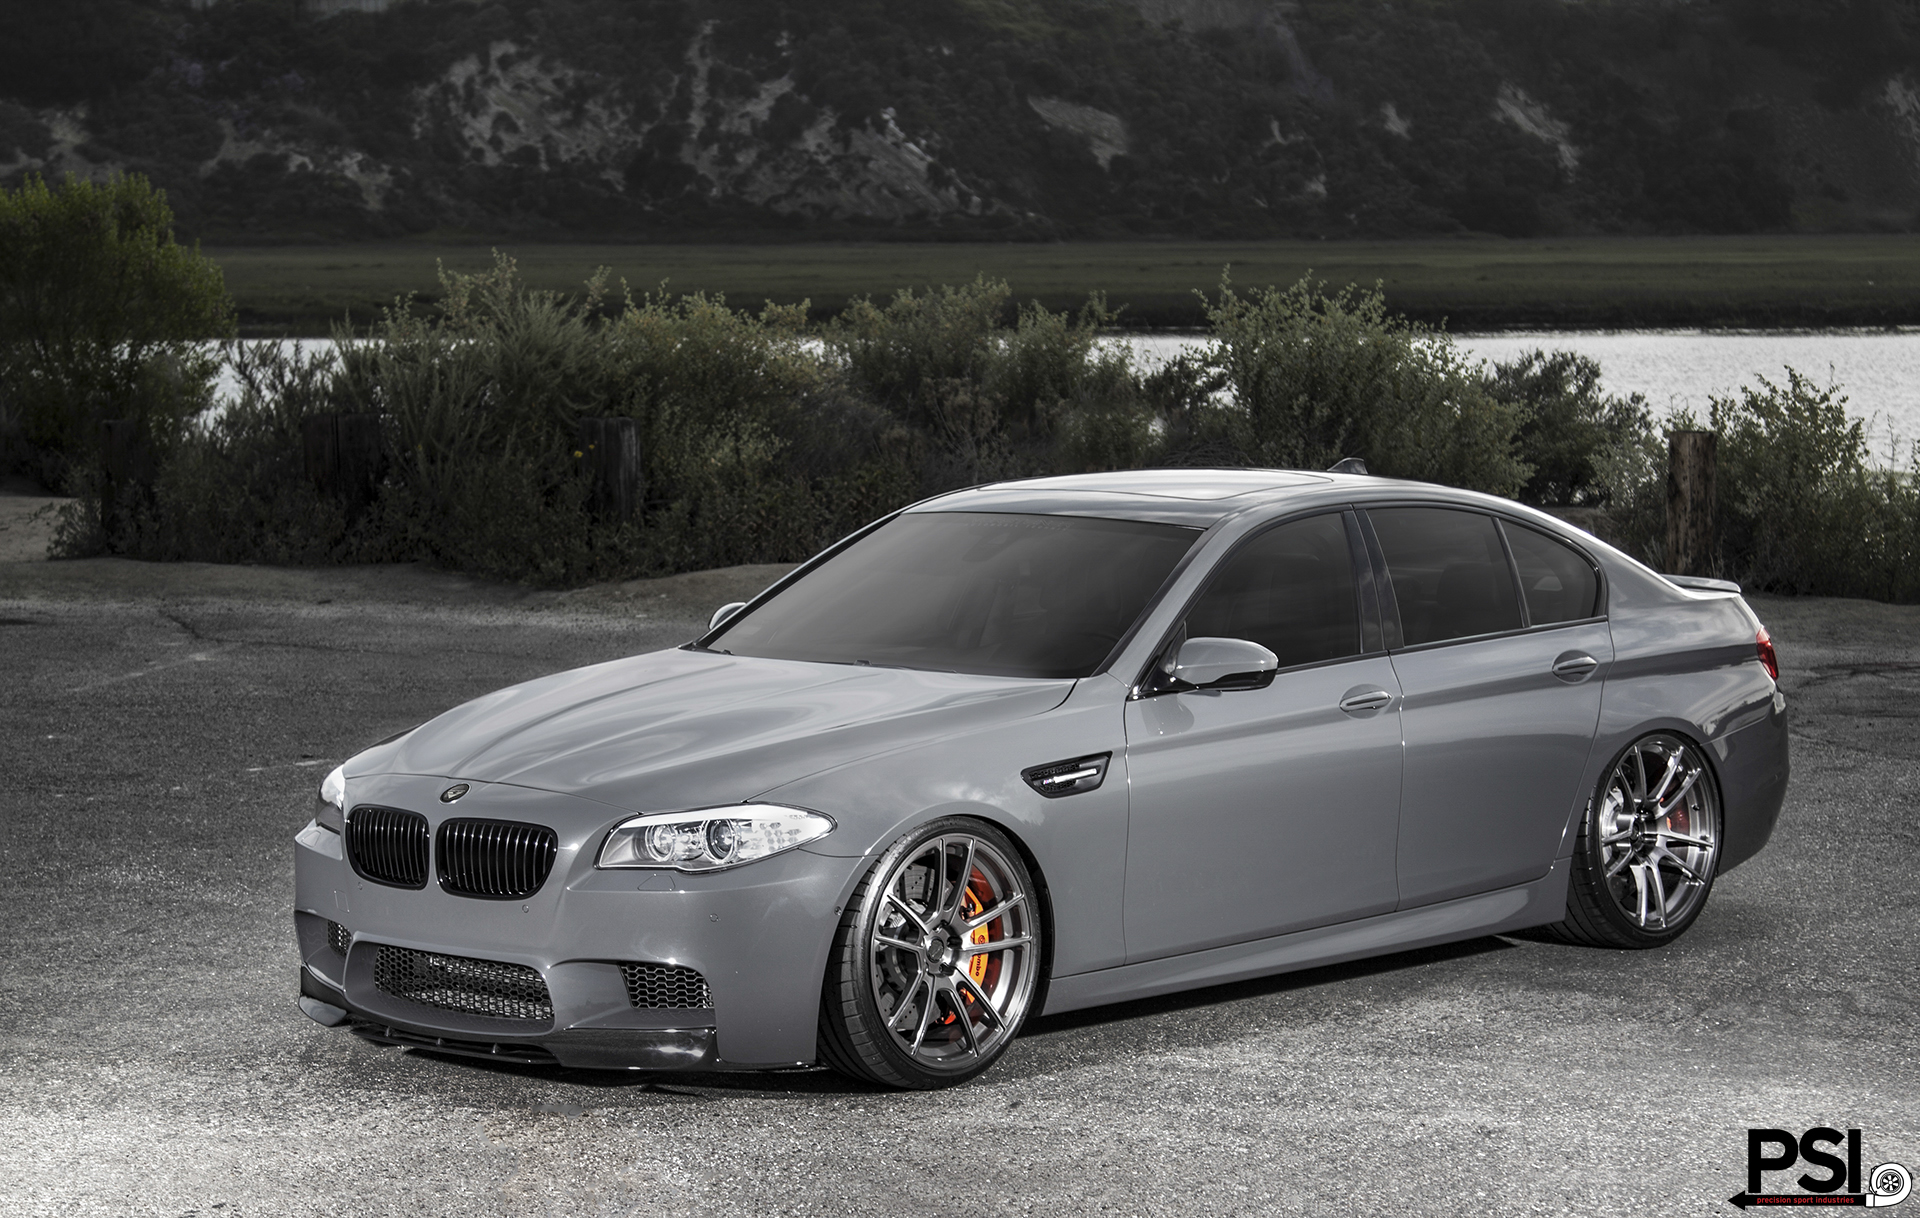 psi introduces vorsteiner bmw f10 m5 program. Black Bedroom Furniture Sets. Home Design Ideas